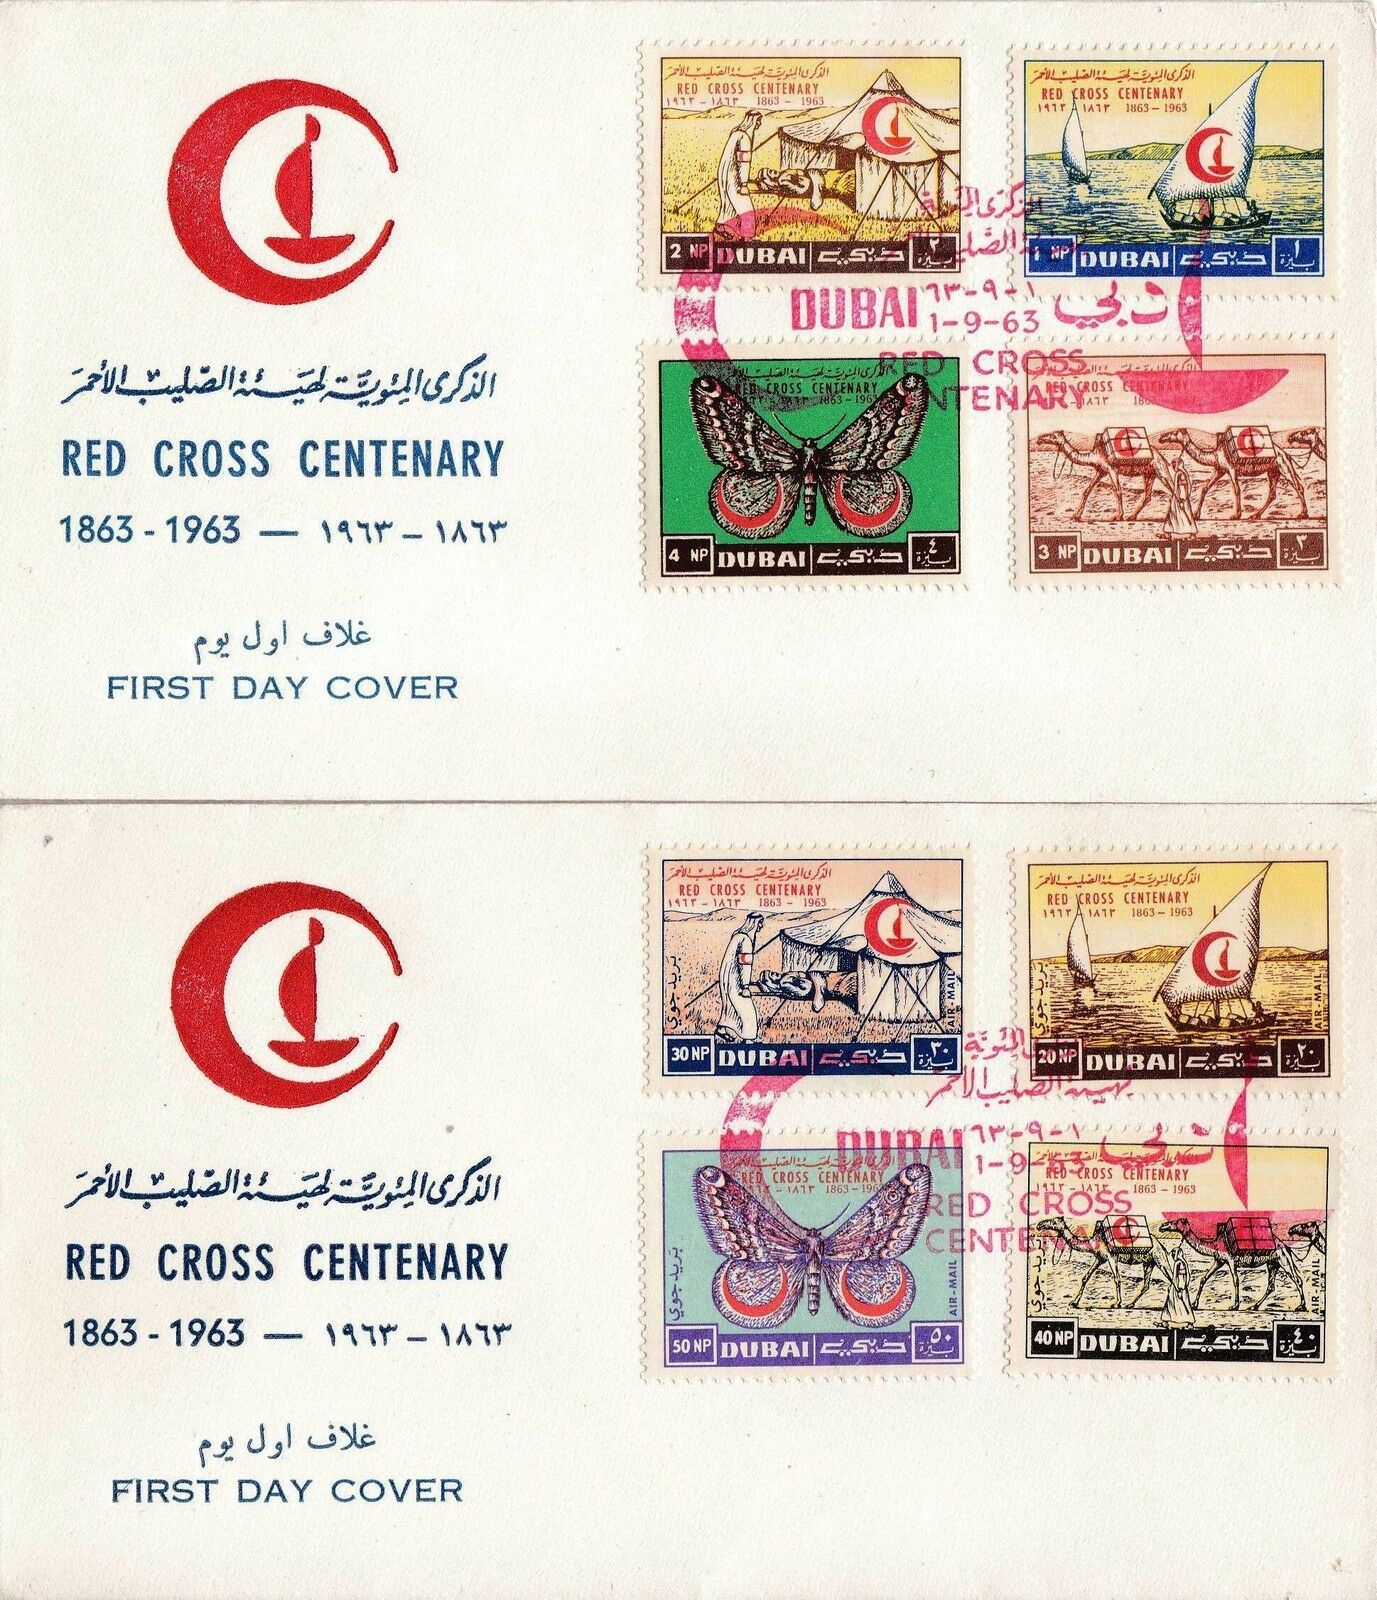 Dubai Fdc 1963 Red Cross Centenary